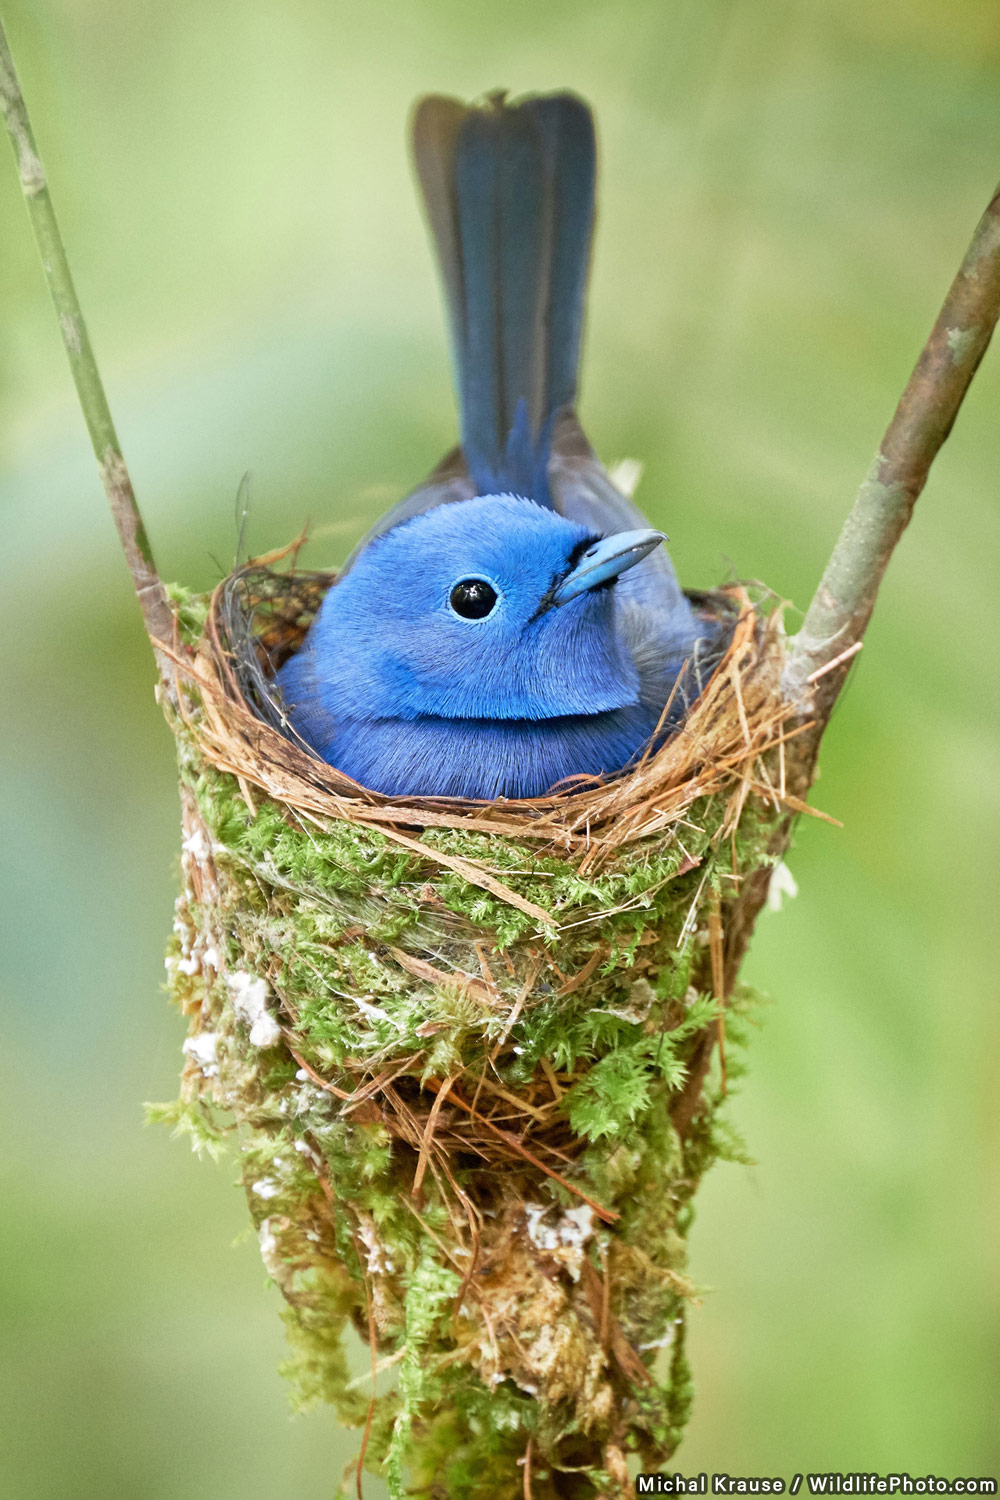 Black-naped Monarch on the Nest, © Michal Krause, Highly Commended, Wildlife Portraits Photo Contest